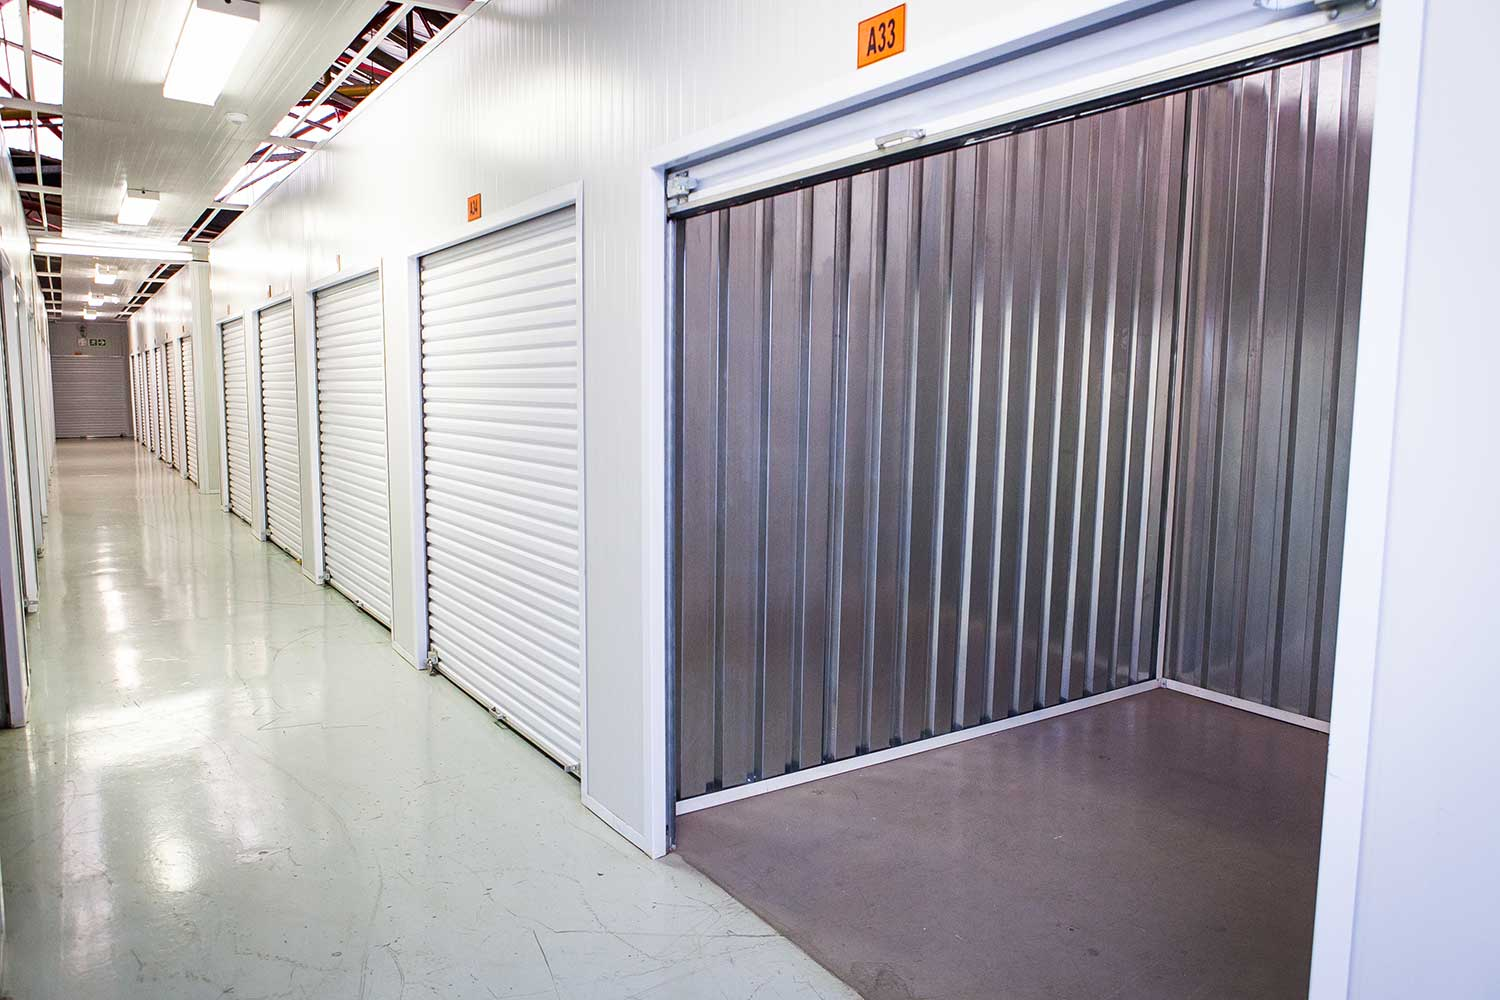 Self storage unit at XtraSpace Wynberg Sandton